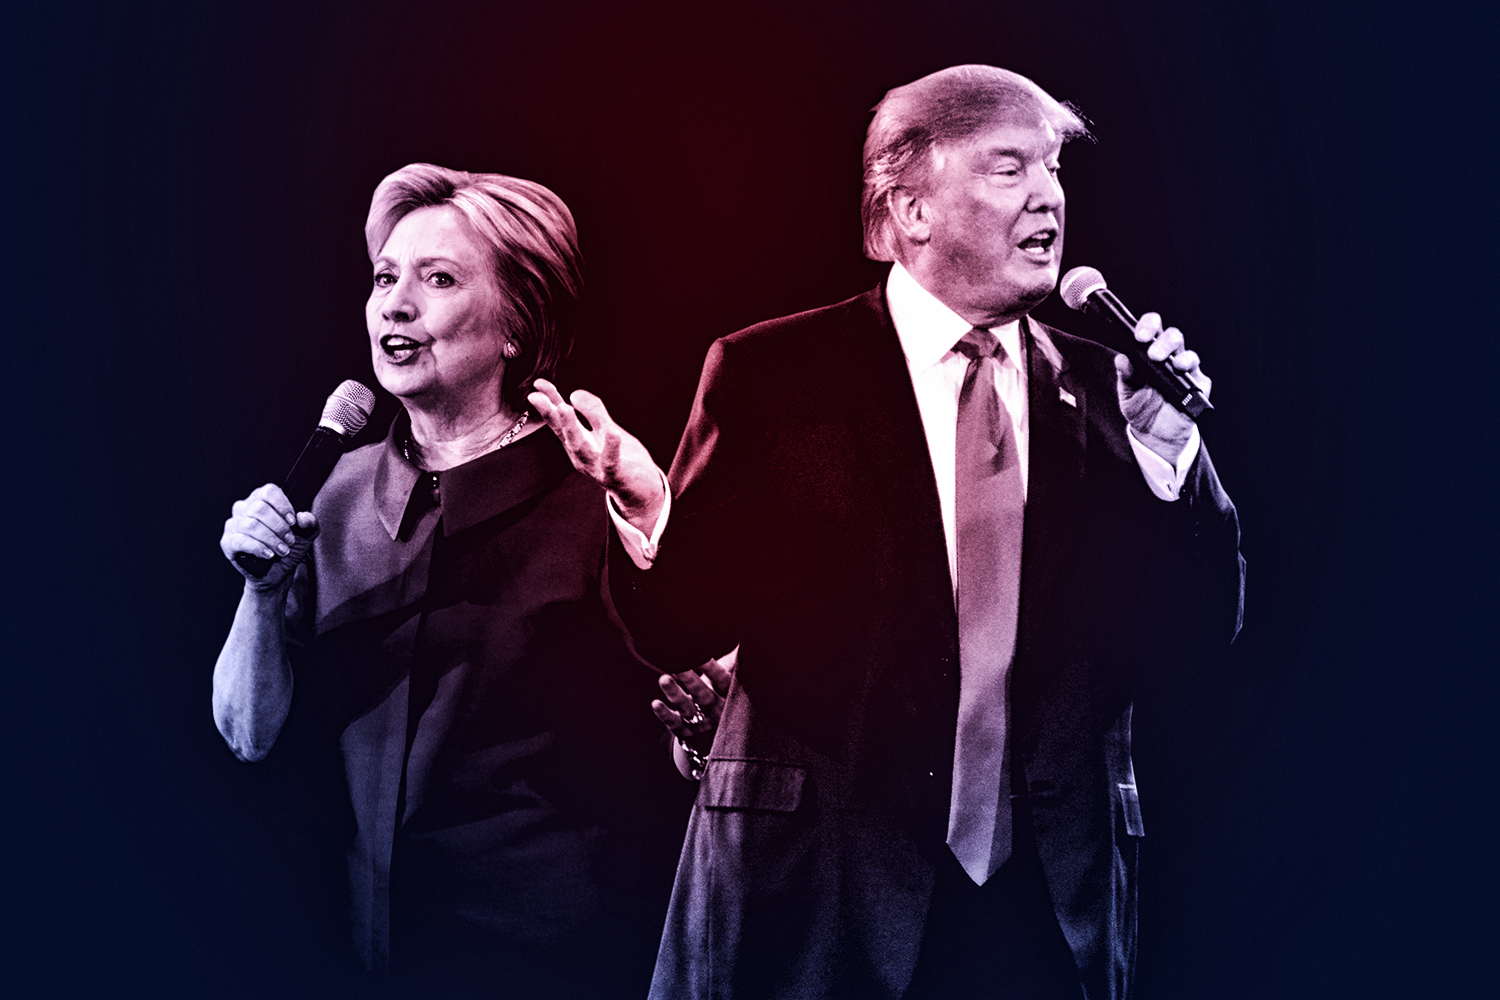 Clinton goes after Trump's weakness: His famously thin skin